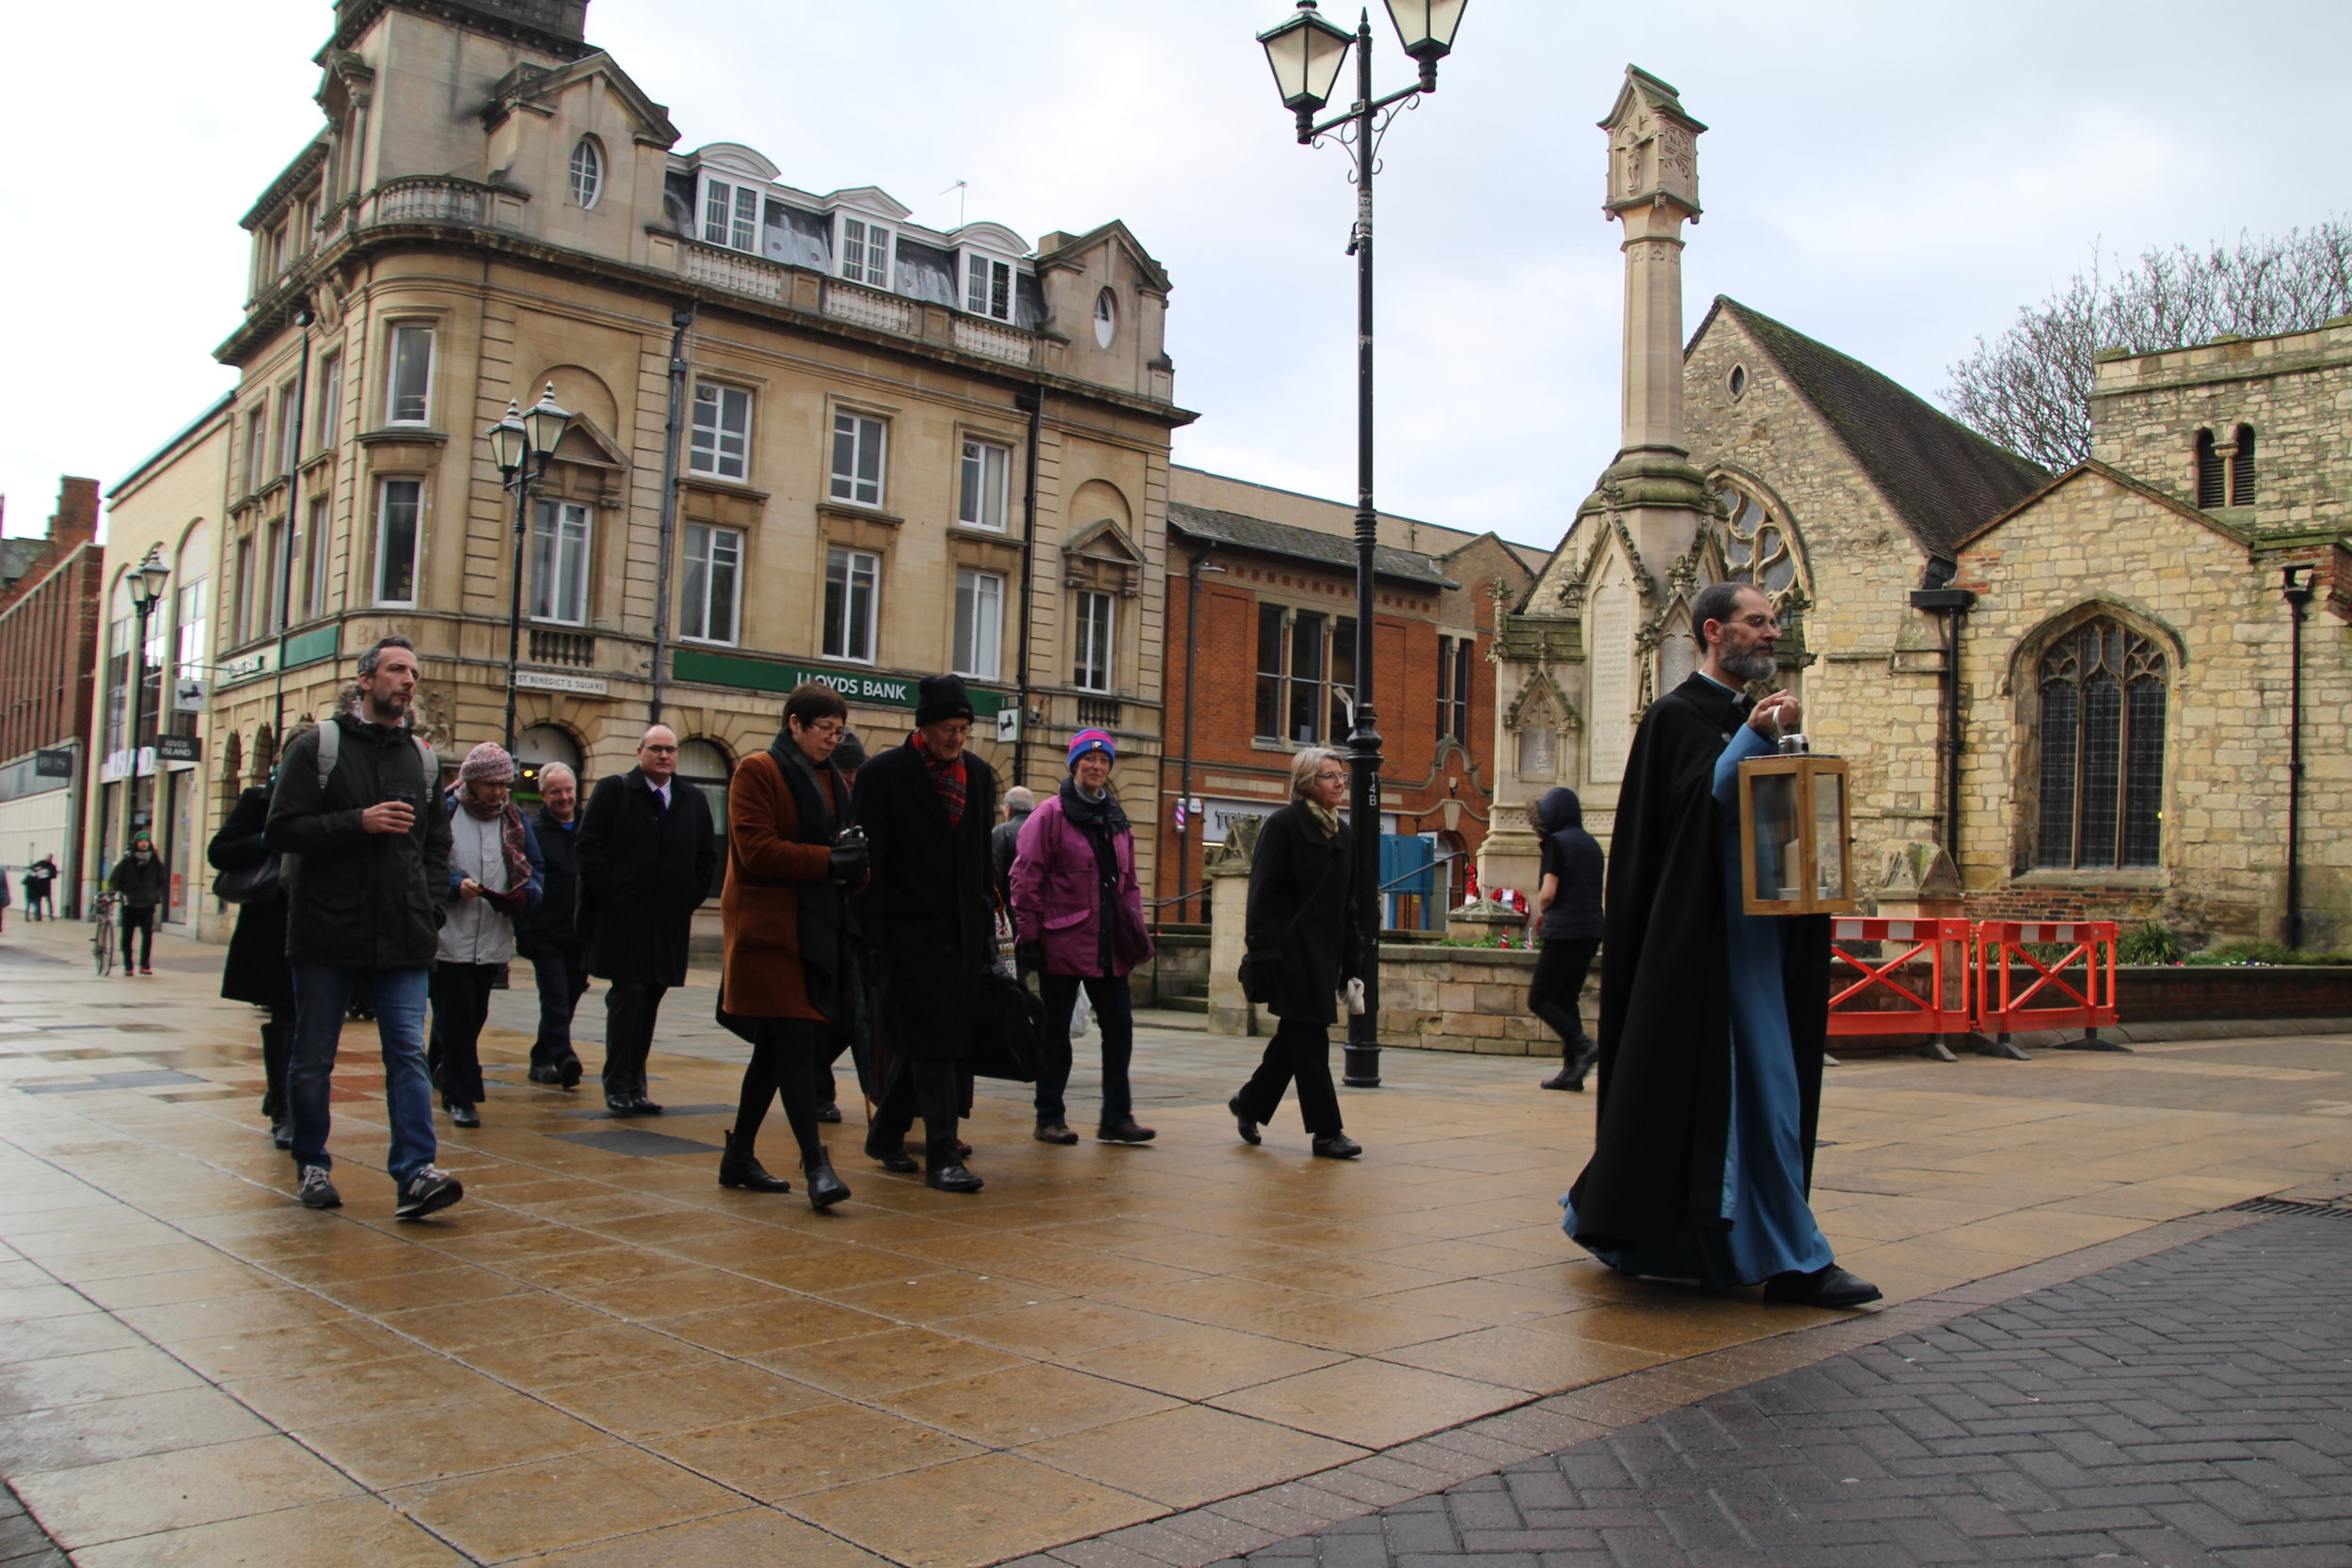 Revd Dr Paul Overend leads a prayer walk through Lincoln to the Cathedral.